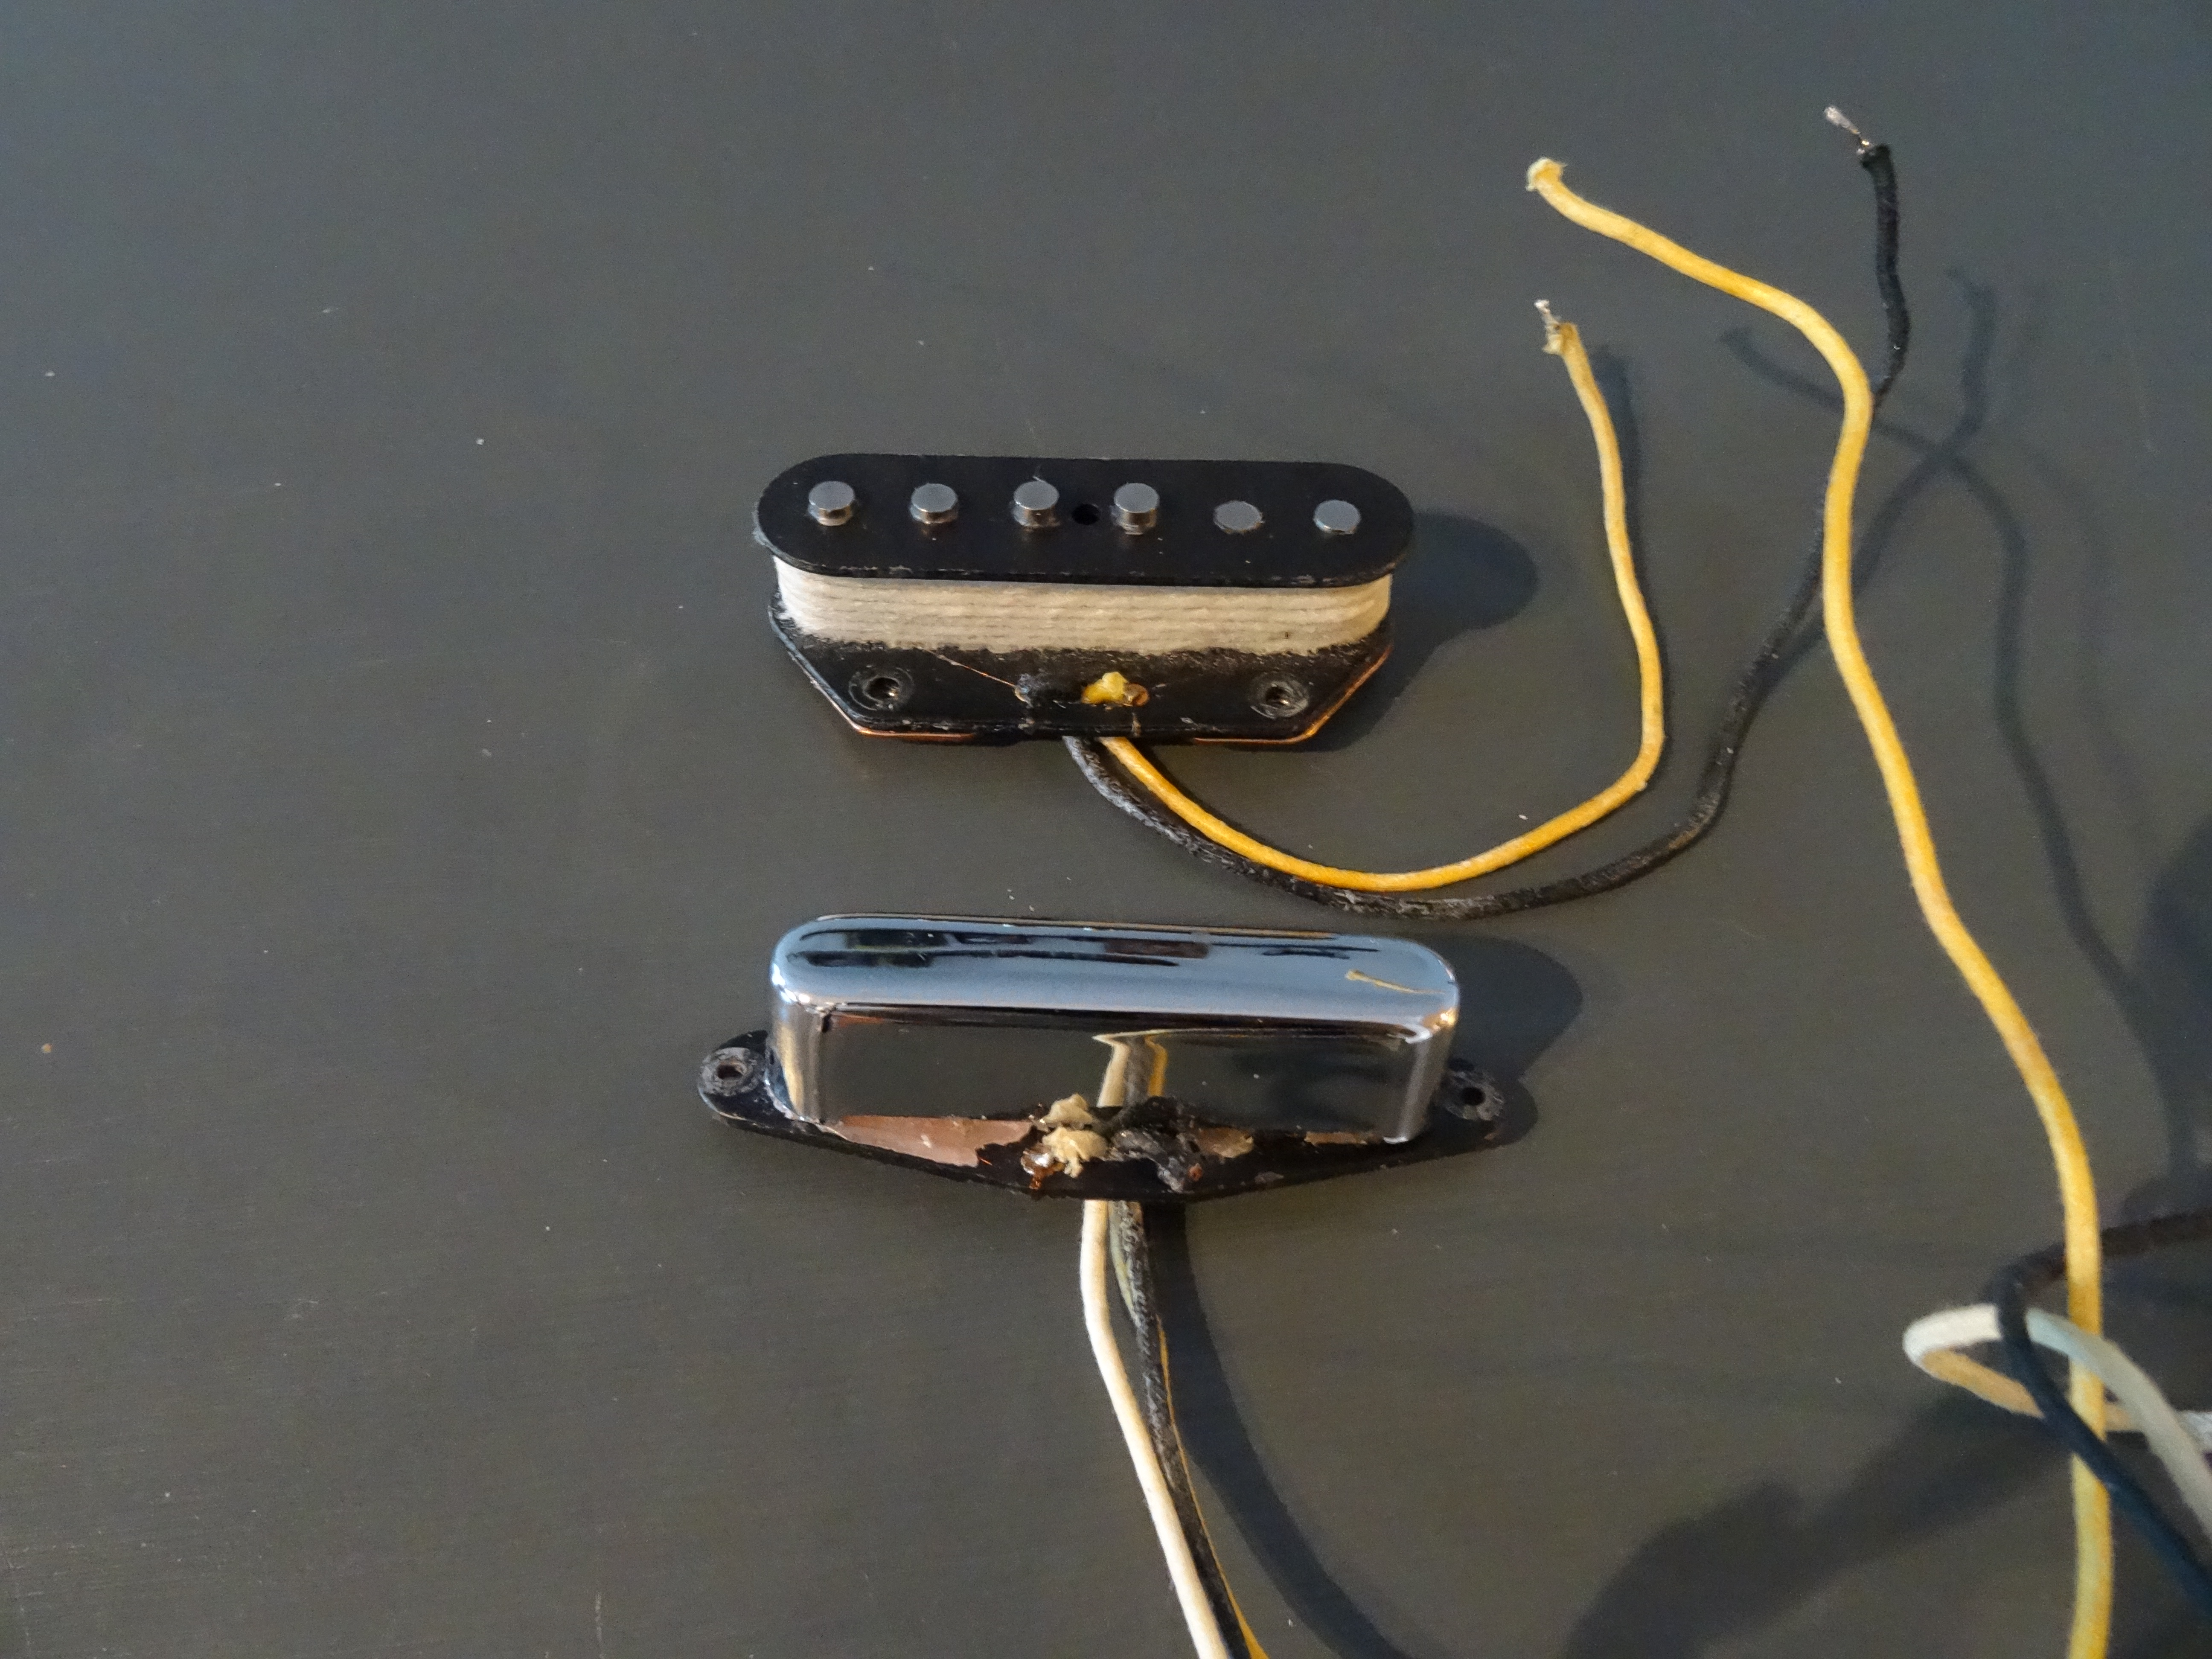 stratocaster custom shop texas special wiring diagram ov 5915  texas special pickups strat wiring diagram schematic wiring  strat wiring diagram schematic wiring